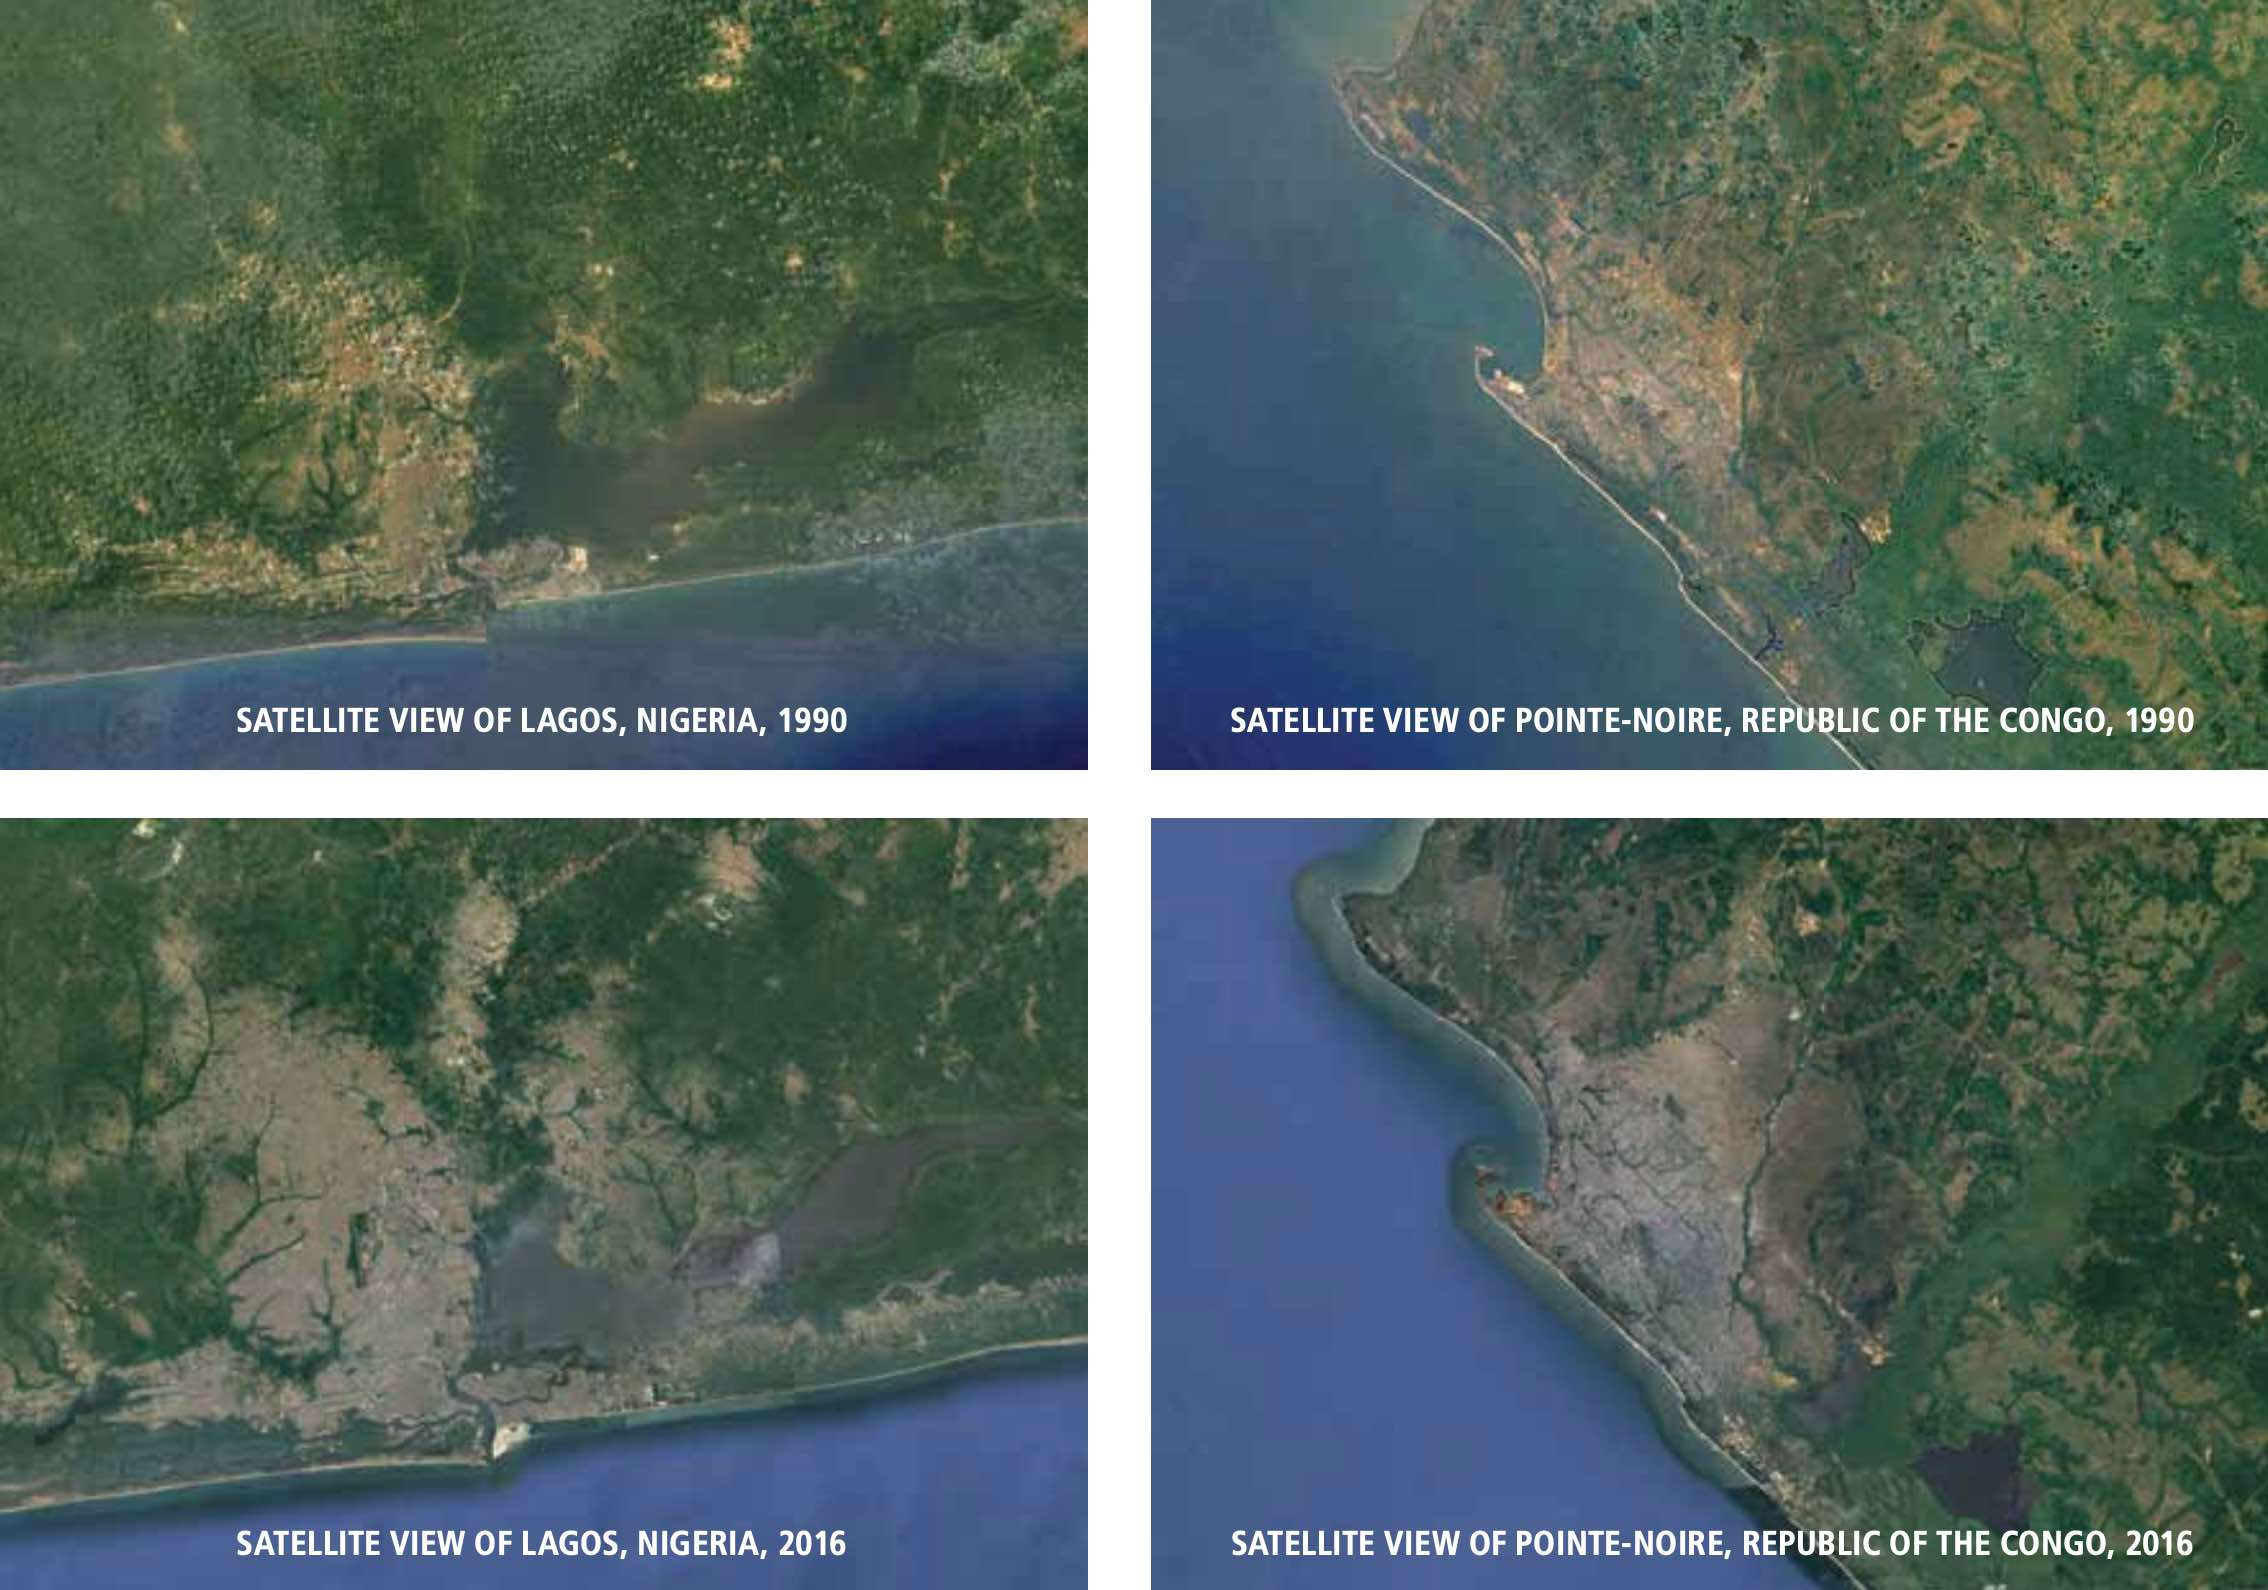 Satellite images show the dramatic growth of the coastal cities of Lagos, Nigeria, and Pointe-Noire, Republic of the Congo, over the past 26 years. The expansion of urban development along West-Central Africa's coast also brings increases in light pollution, vessel traffic, ocean pollution, and other changes that impact turtle habitats. MAP DATA: GOOGLE, IMAGE LANDSET / COPERNICUS, DATA SIO, NOAA, U.S. NAVY, NGA GEBCO, US DEPT OF STATE GEOGRAPHER